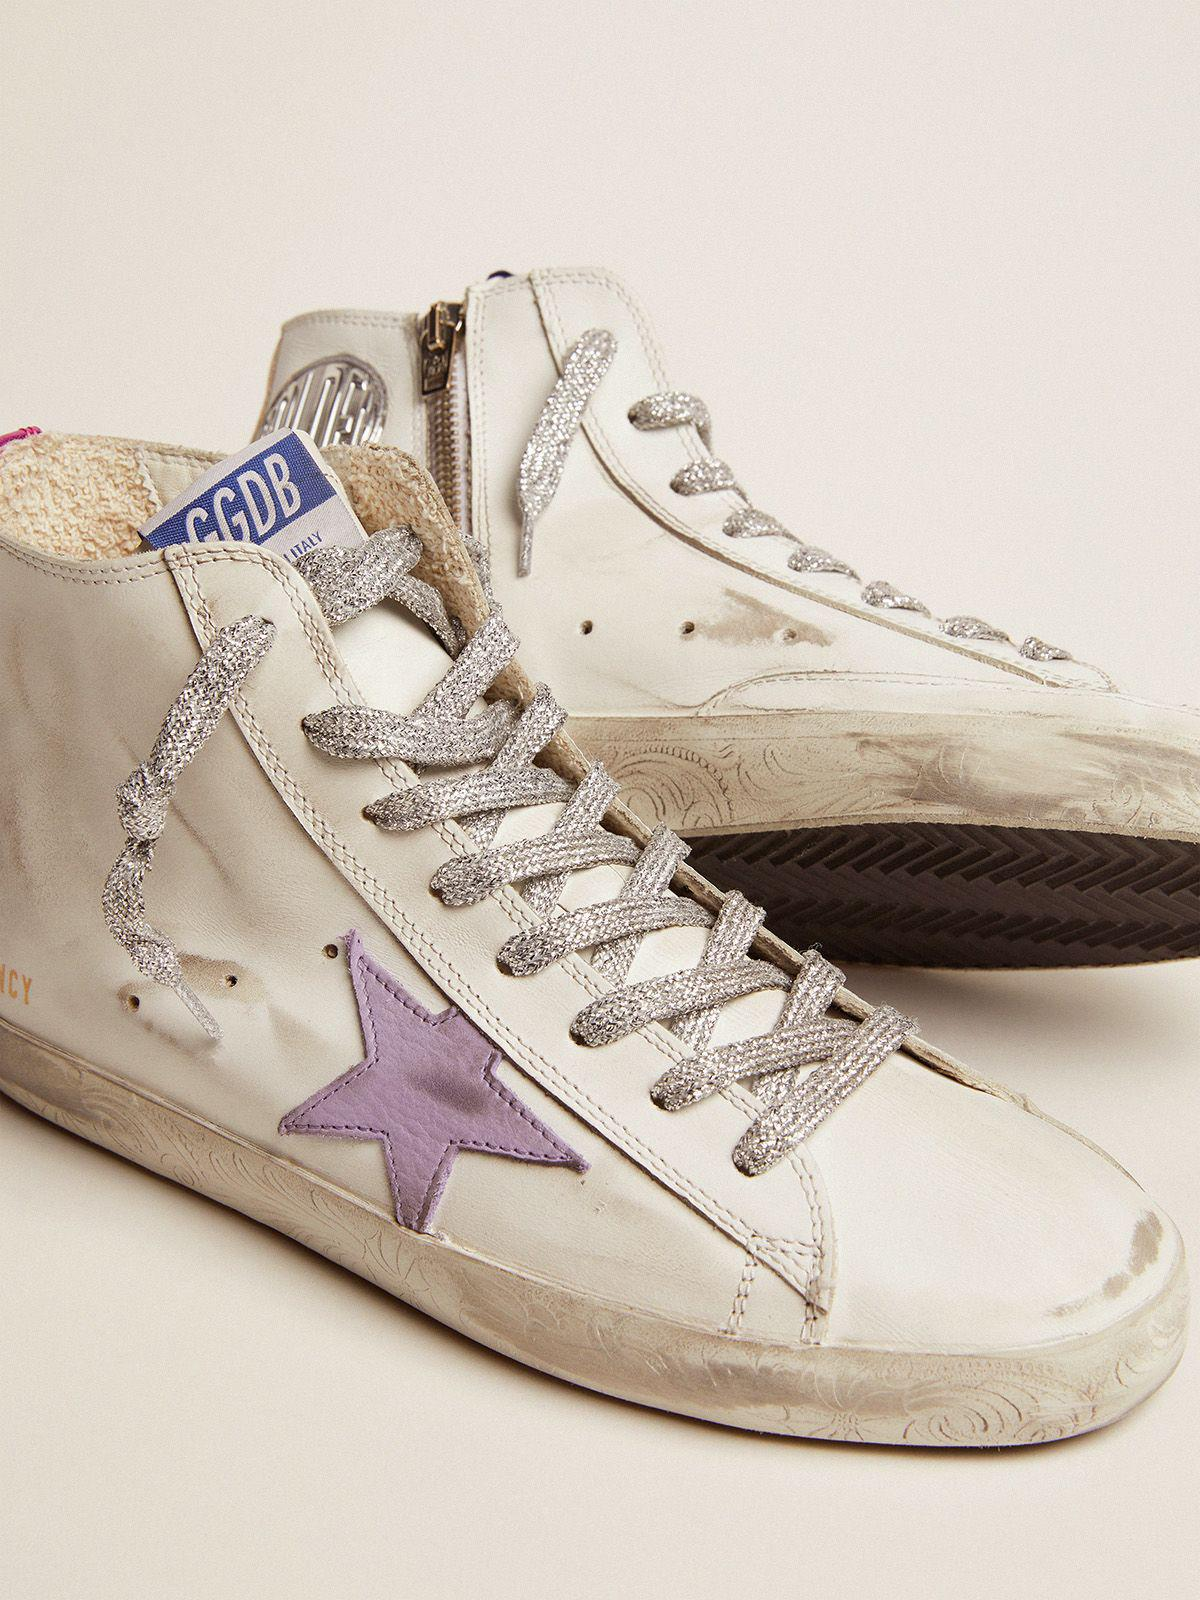 Francy sneakers with foxing with floral decorations and lavender-colored star 2